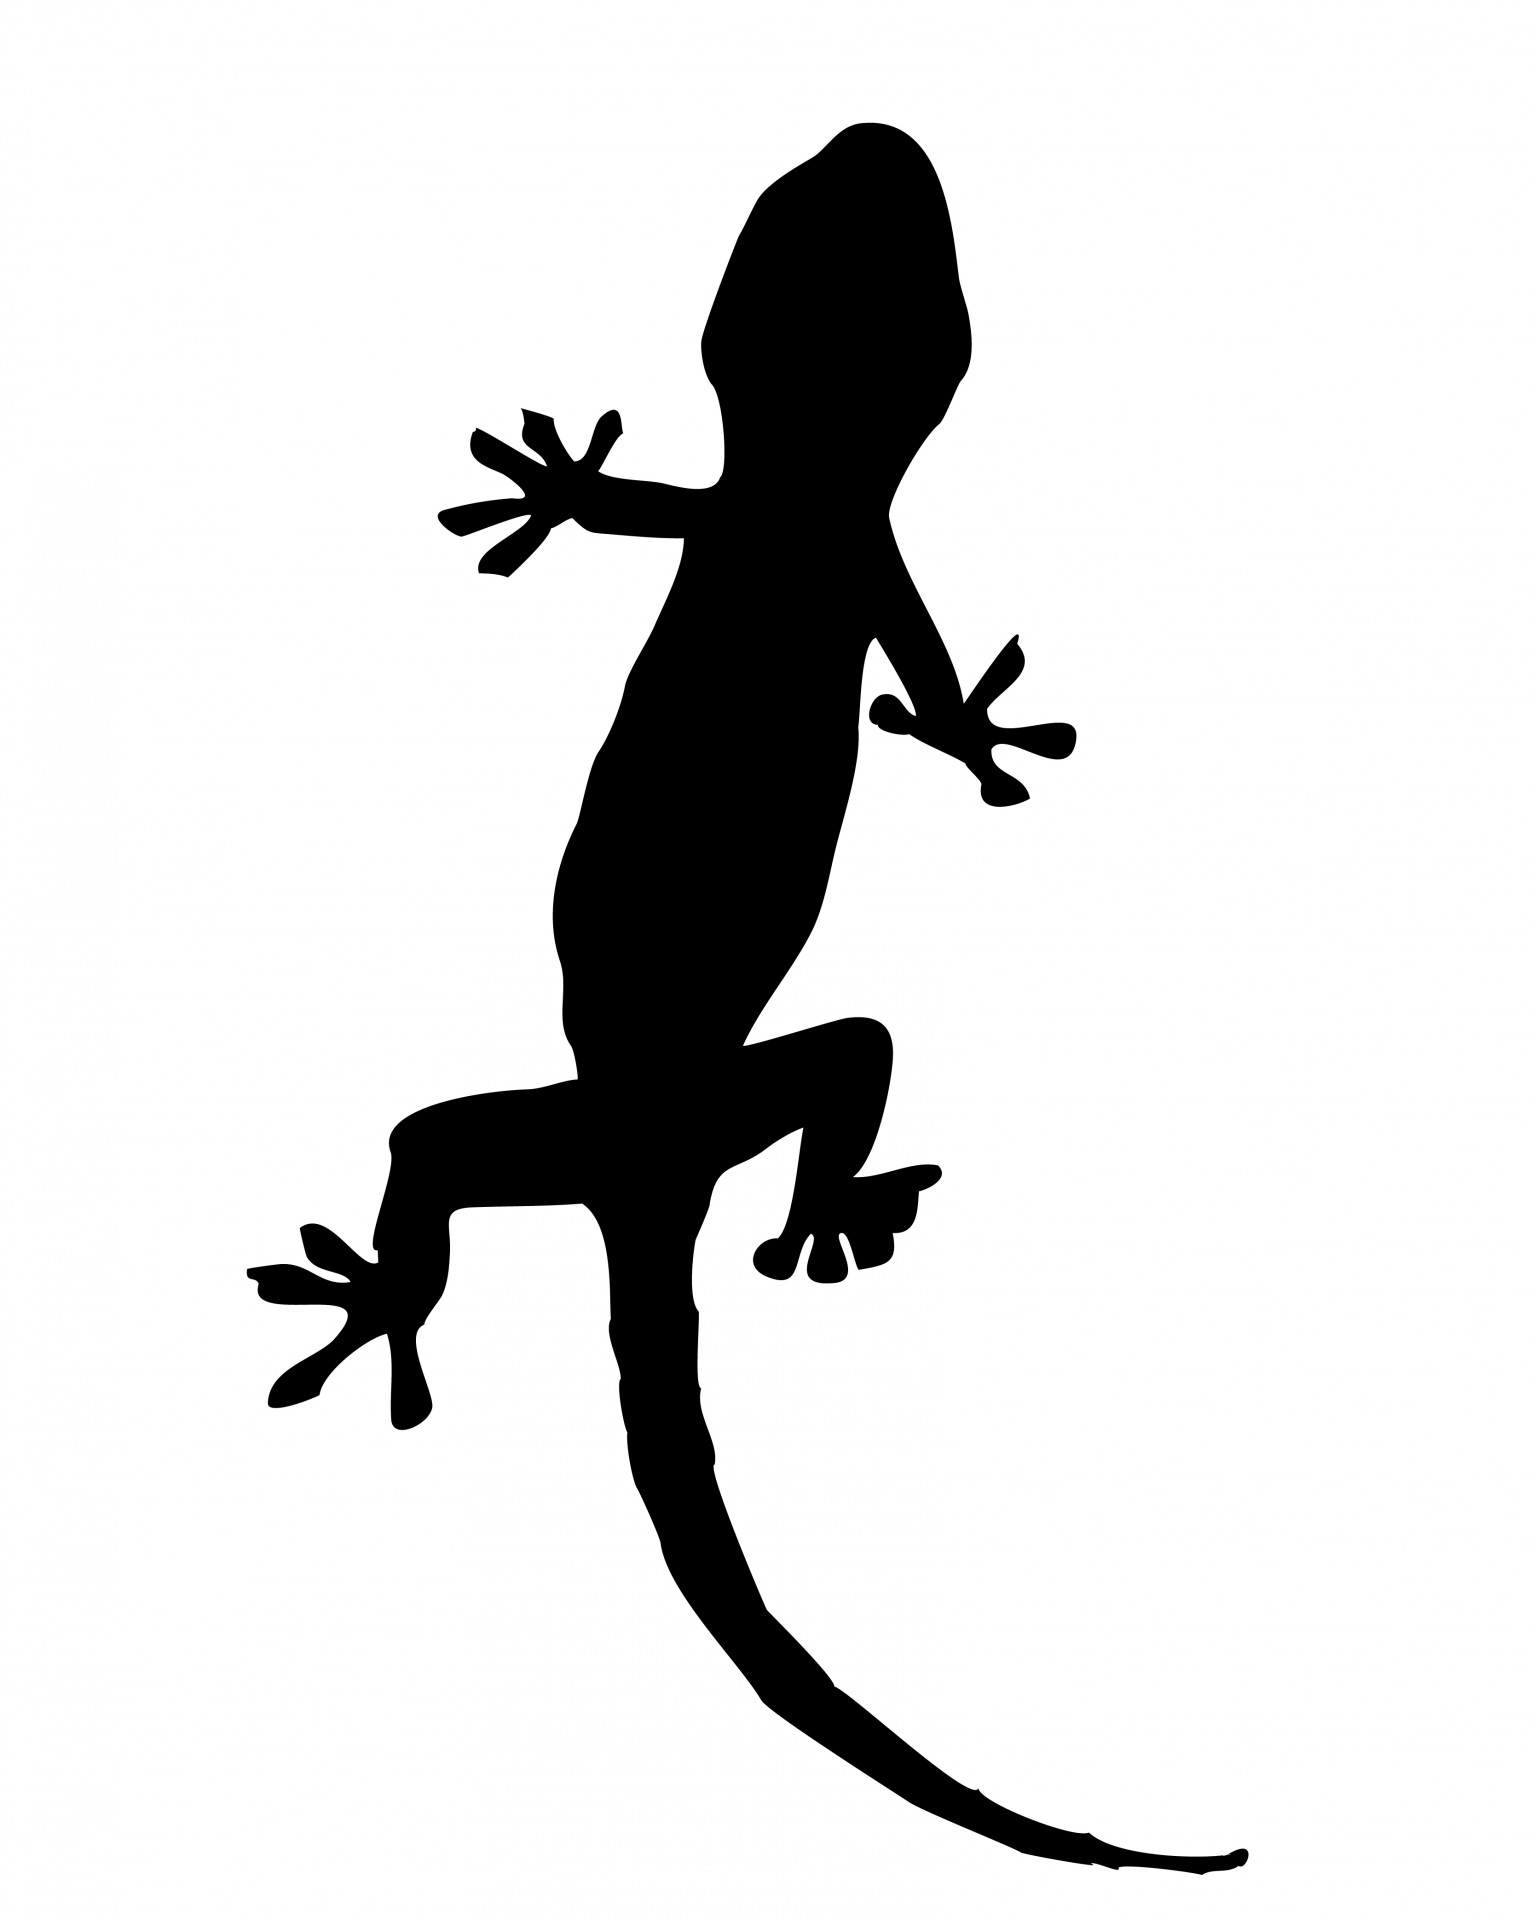 Silhouette free stock photo. Gecko clipart